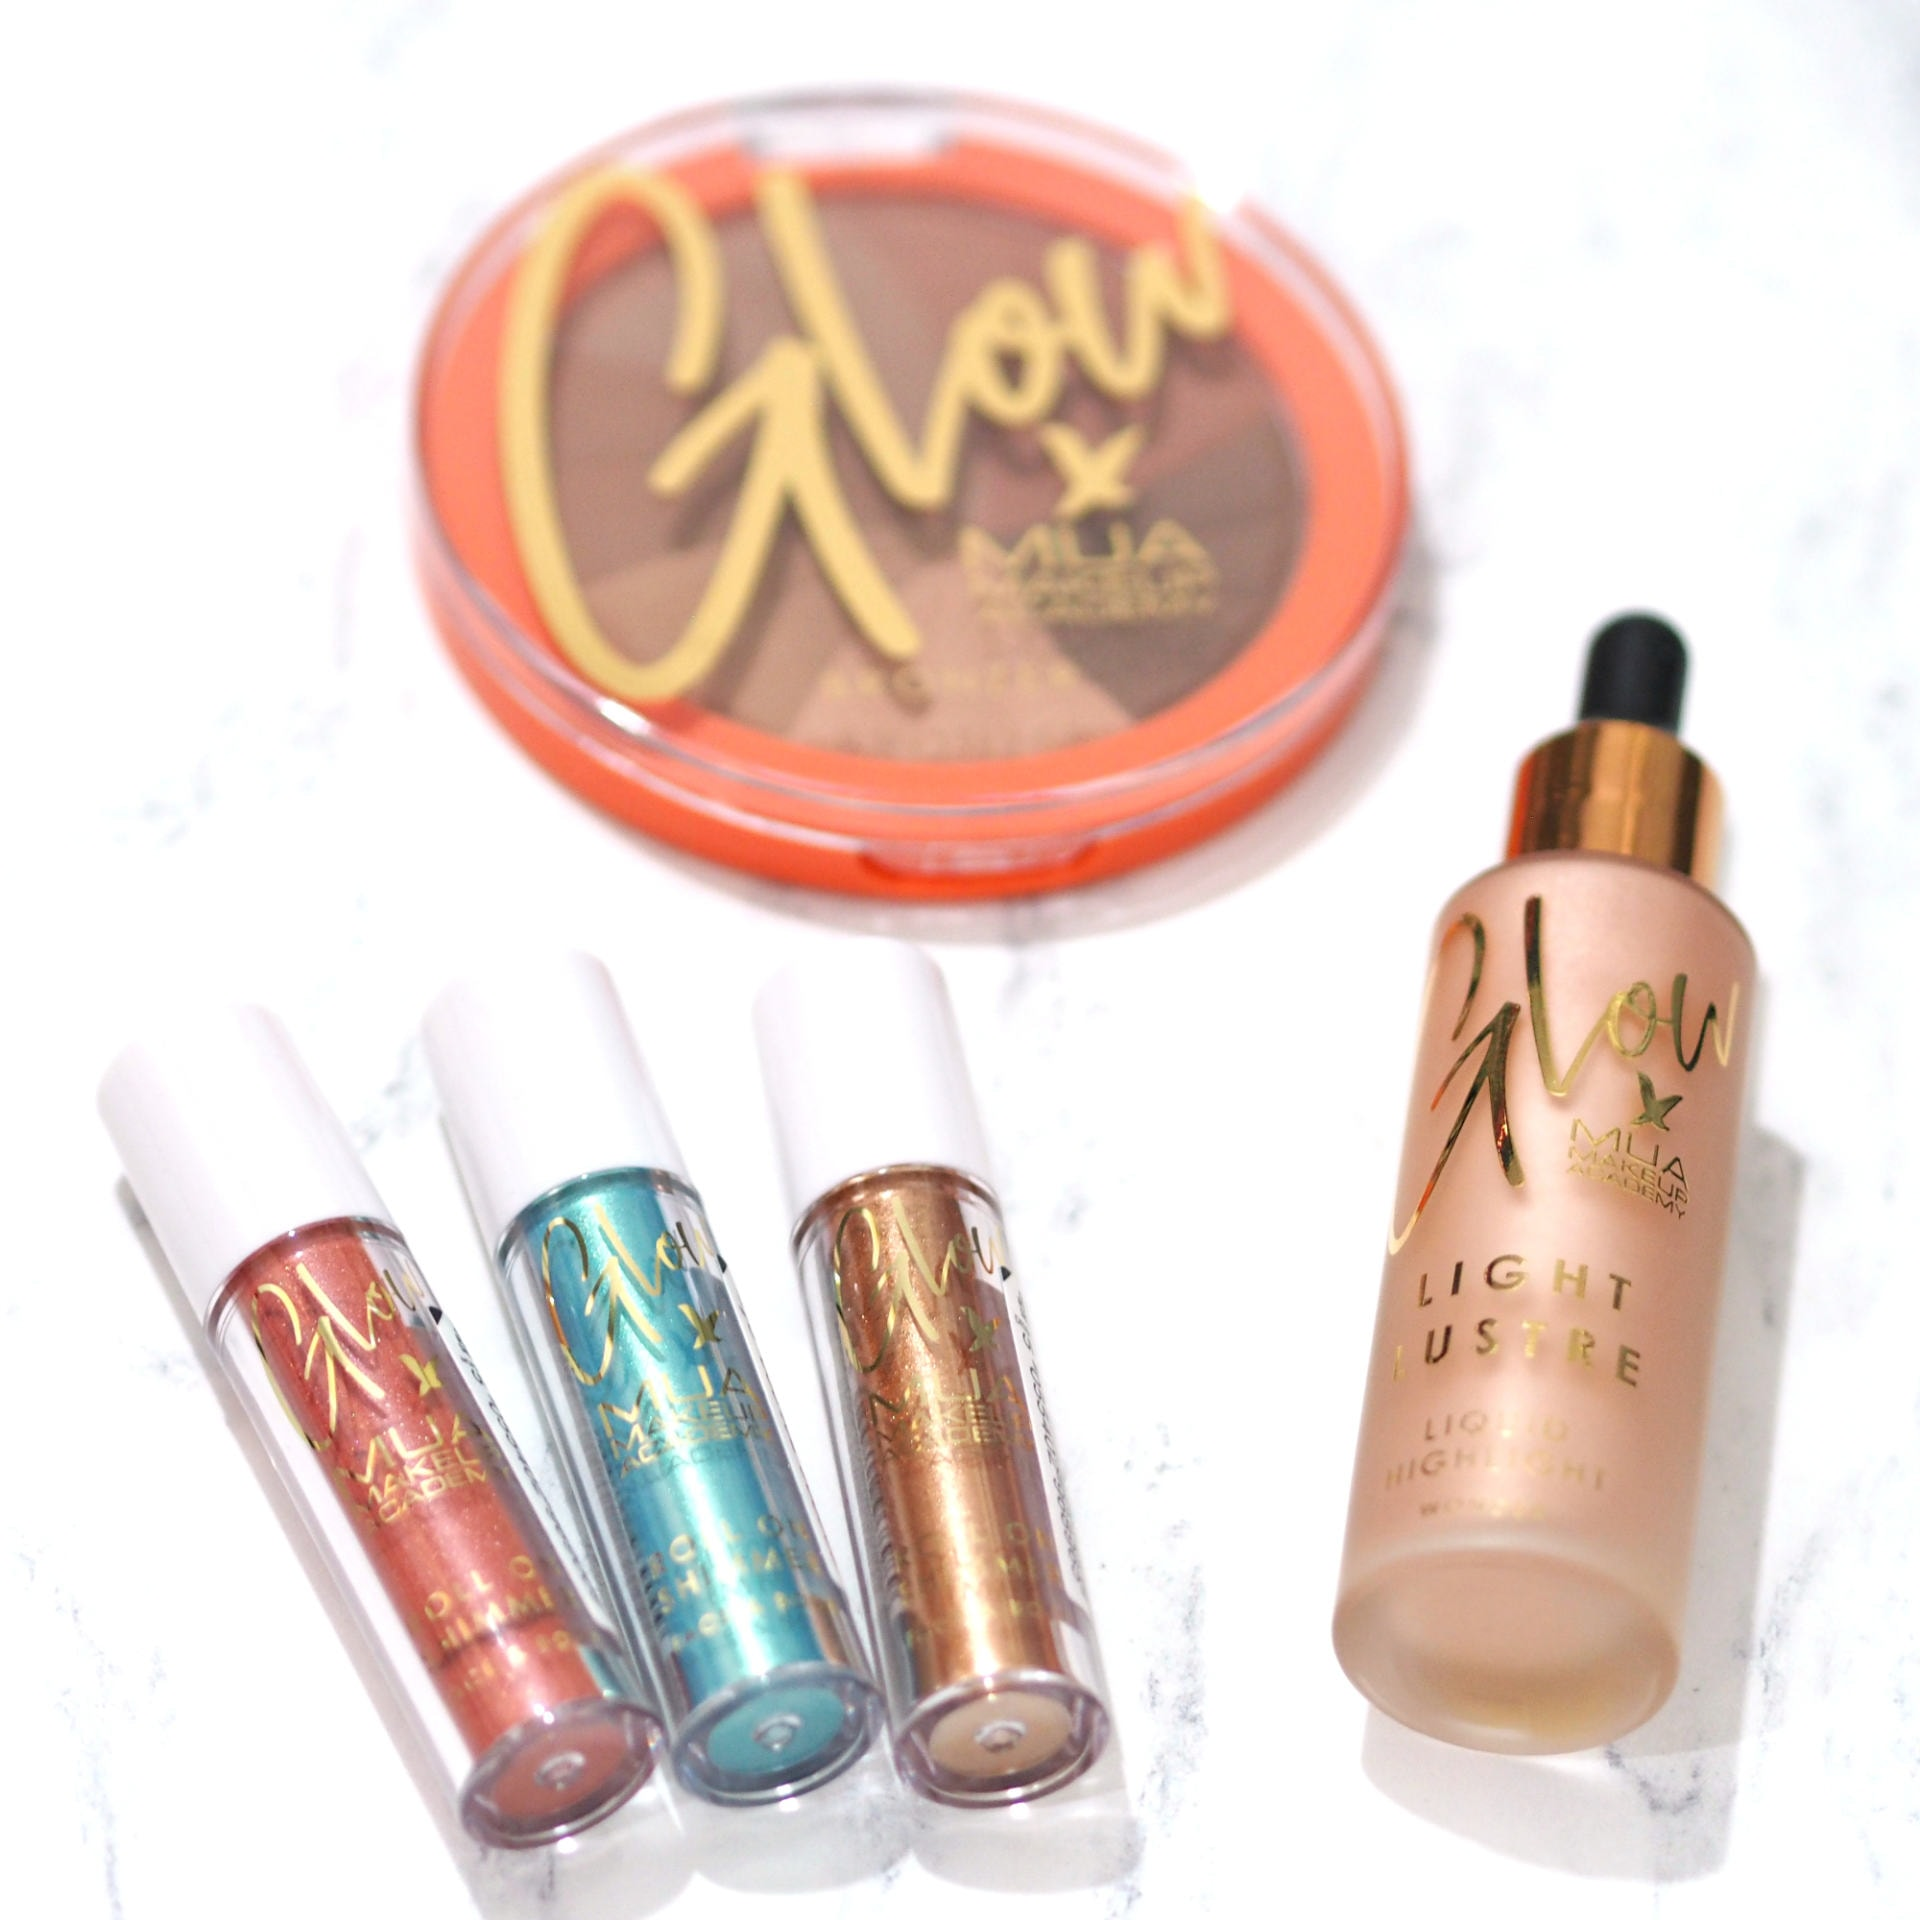 MUA x Glow Collection Review and Swatches ft. Bronzed Perfection, Light Lustre Liquid Highlighter, Roll On Eye Shimmers and more